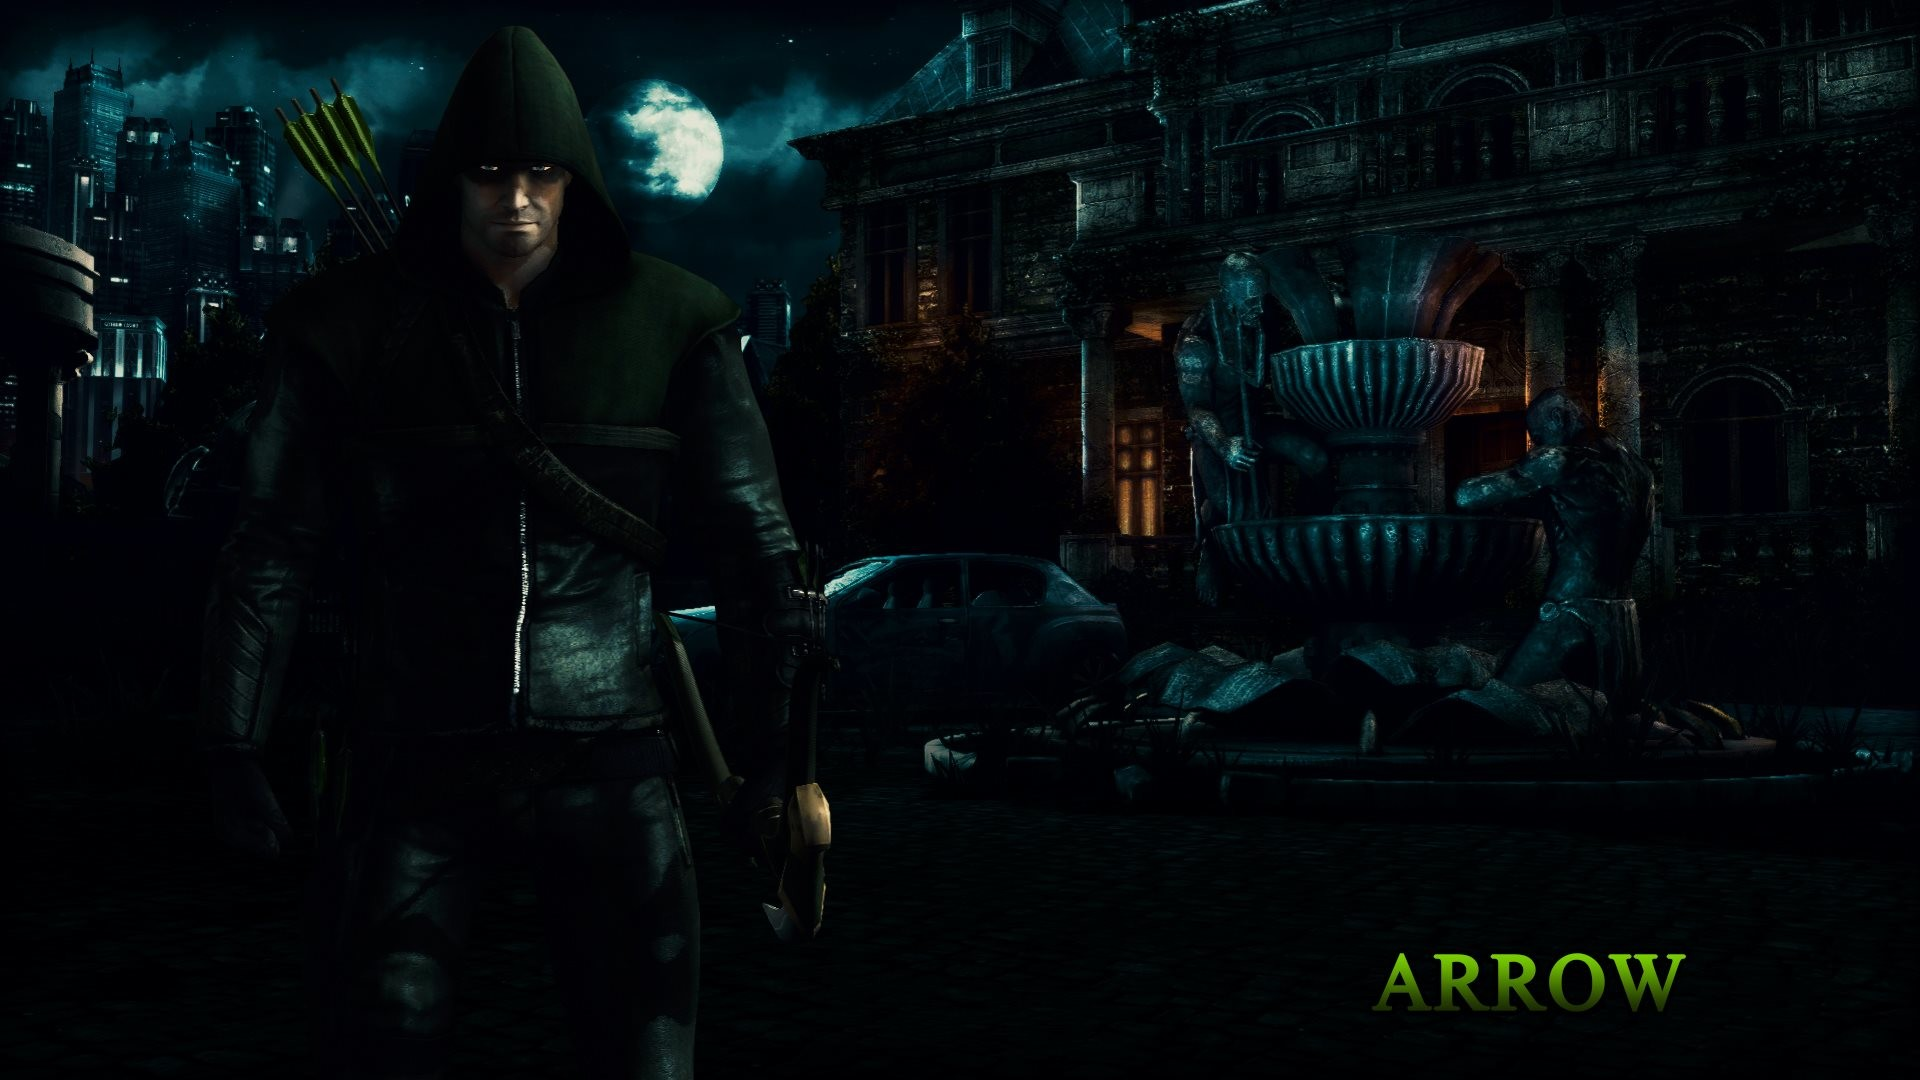 In the 5th wallpaper is Arrow from Injustice: Gods Among Us